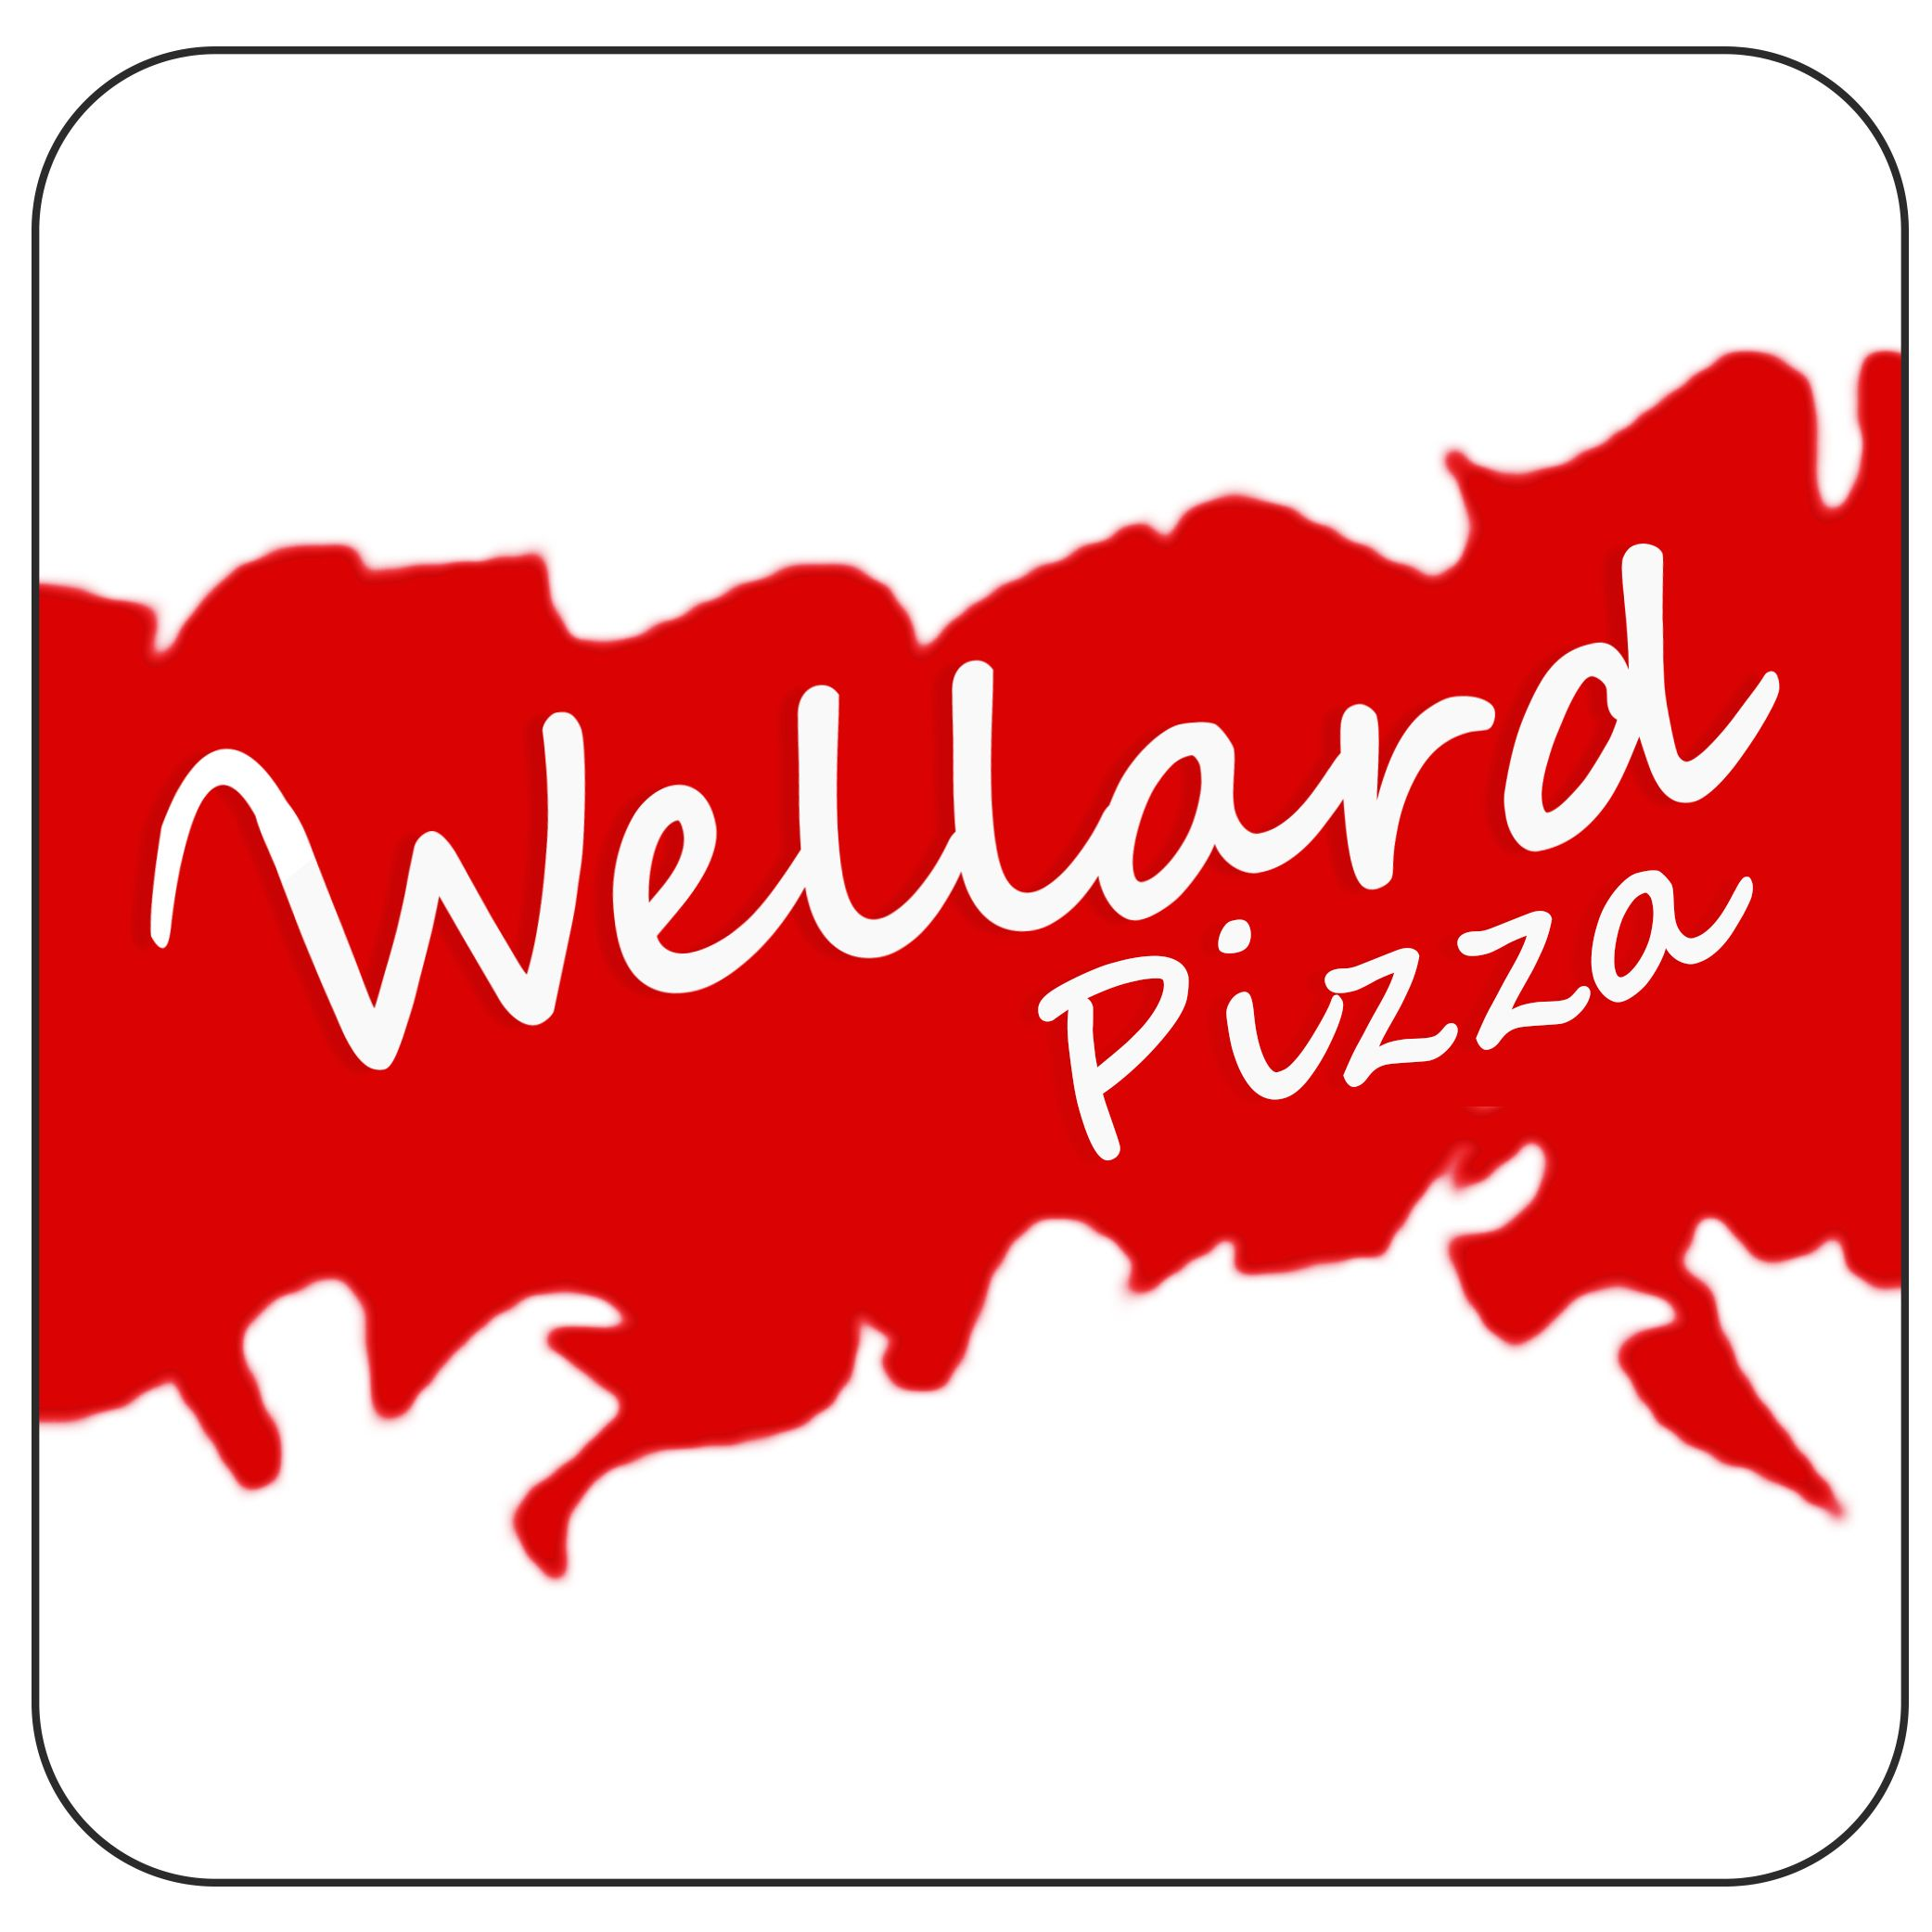 Wellard Pizza